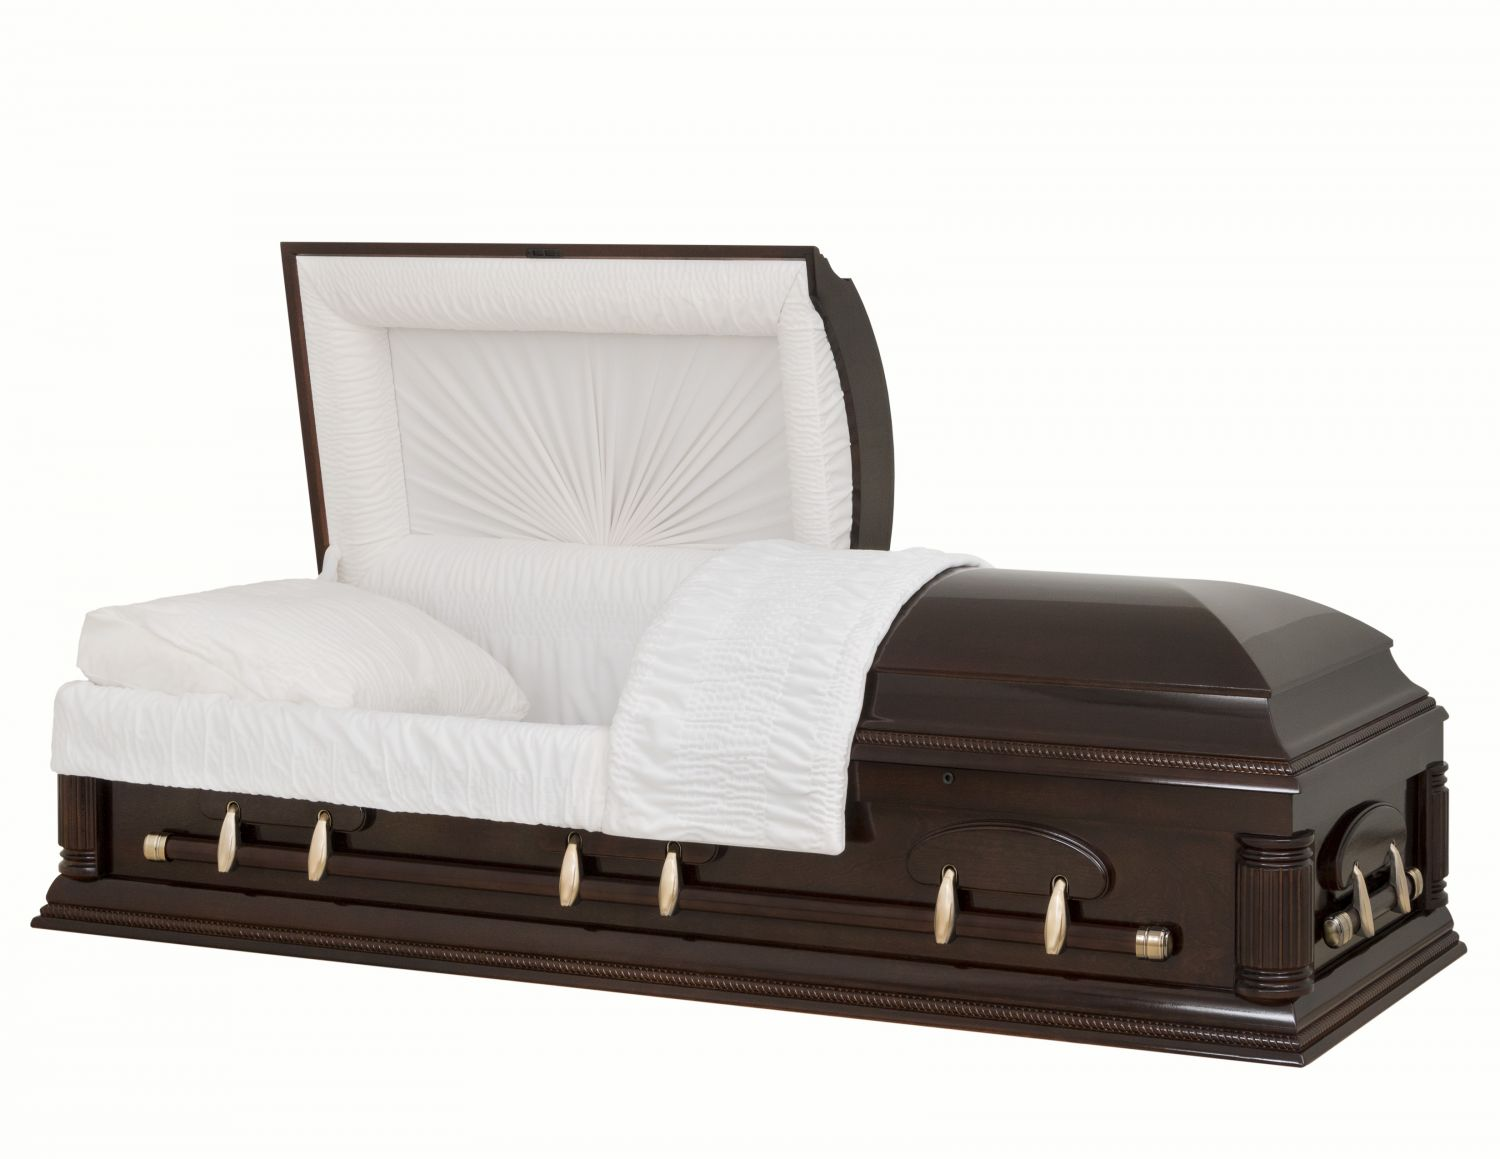 Concept Caskets 18204-00849-N POPLAR CASKET POLISHED NOVA VELVET  SOUTH MAHOGANY  MATRESS YES W1462W-1    6 X 2 ANTIQUE GOLD